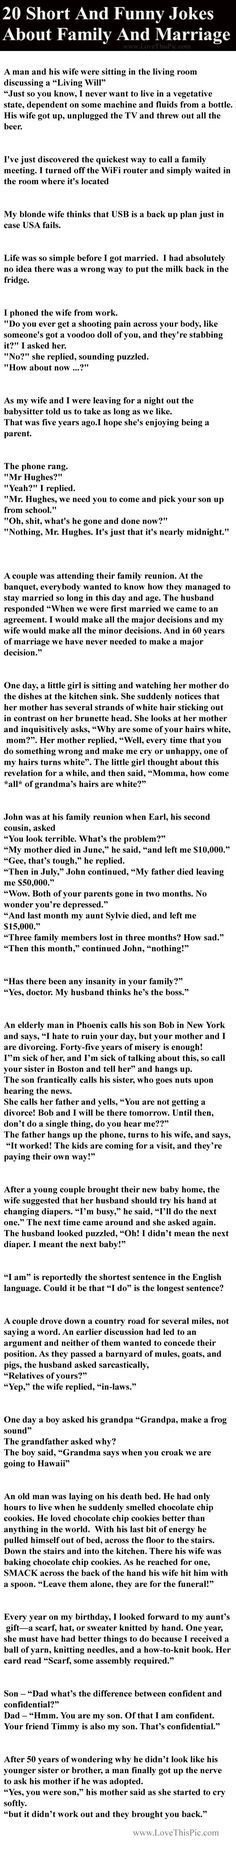 20 Short And Funny Jokes About Family And Marriage Funny Family Jokes Story  Lol Funny Quote